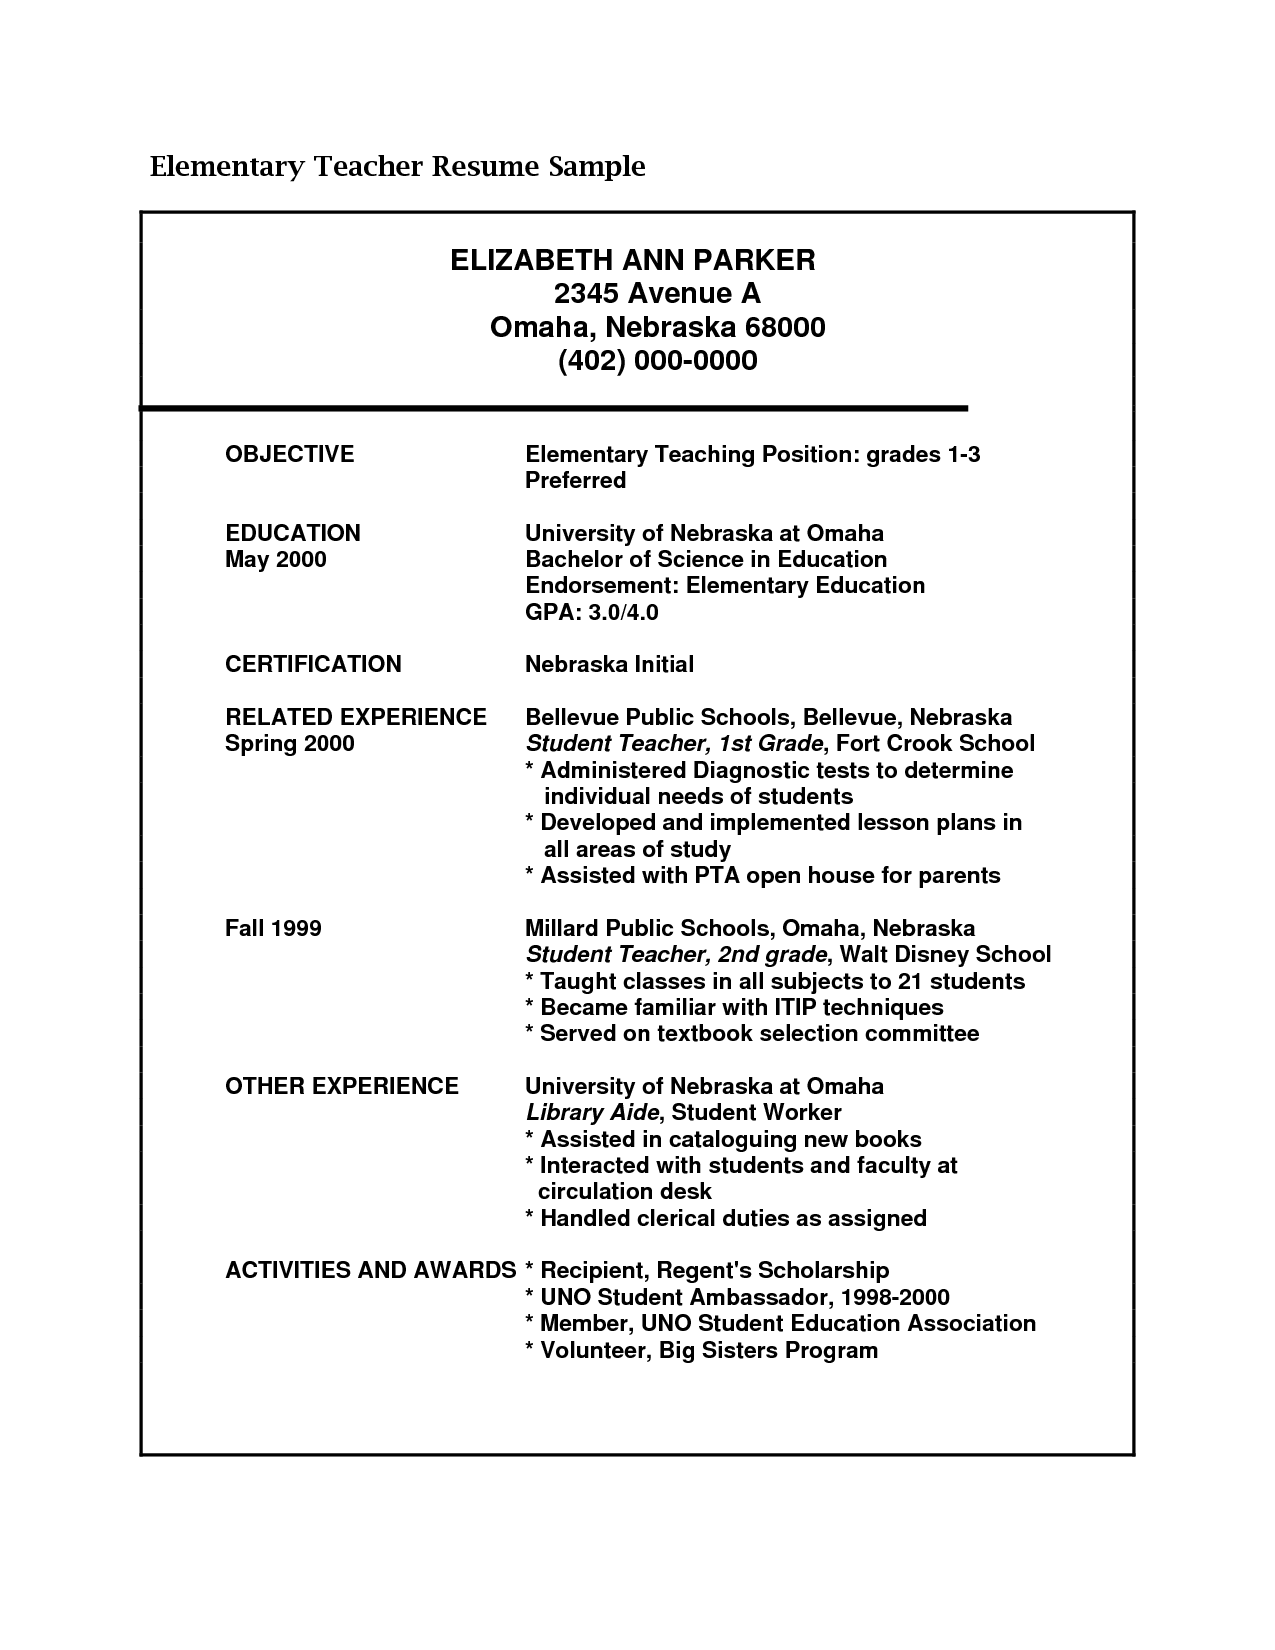 admin teacher resume examples elementary teacher resume examples admin teacher resume examples elementary teacher resume examples high school teacher resume